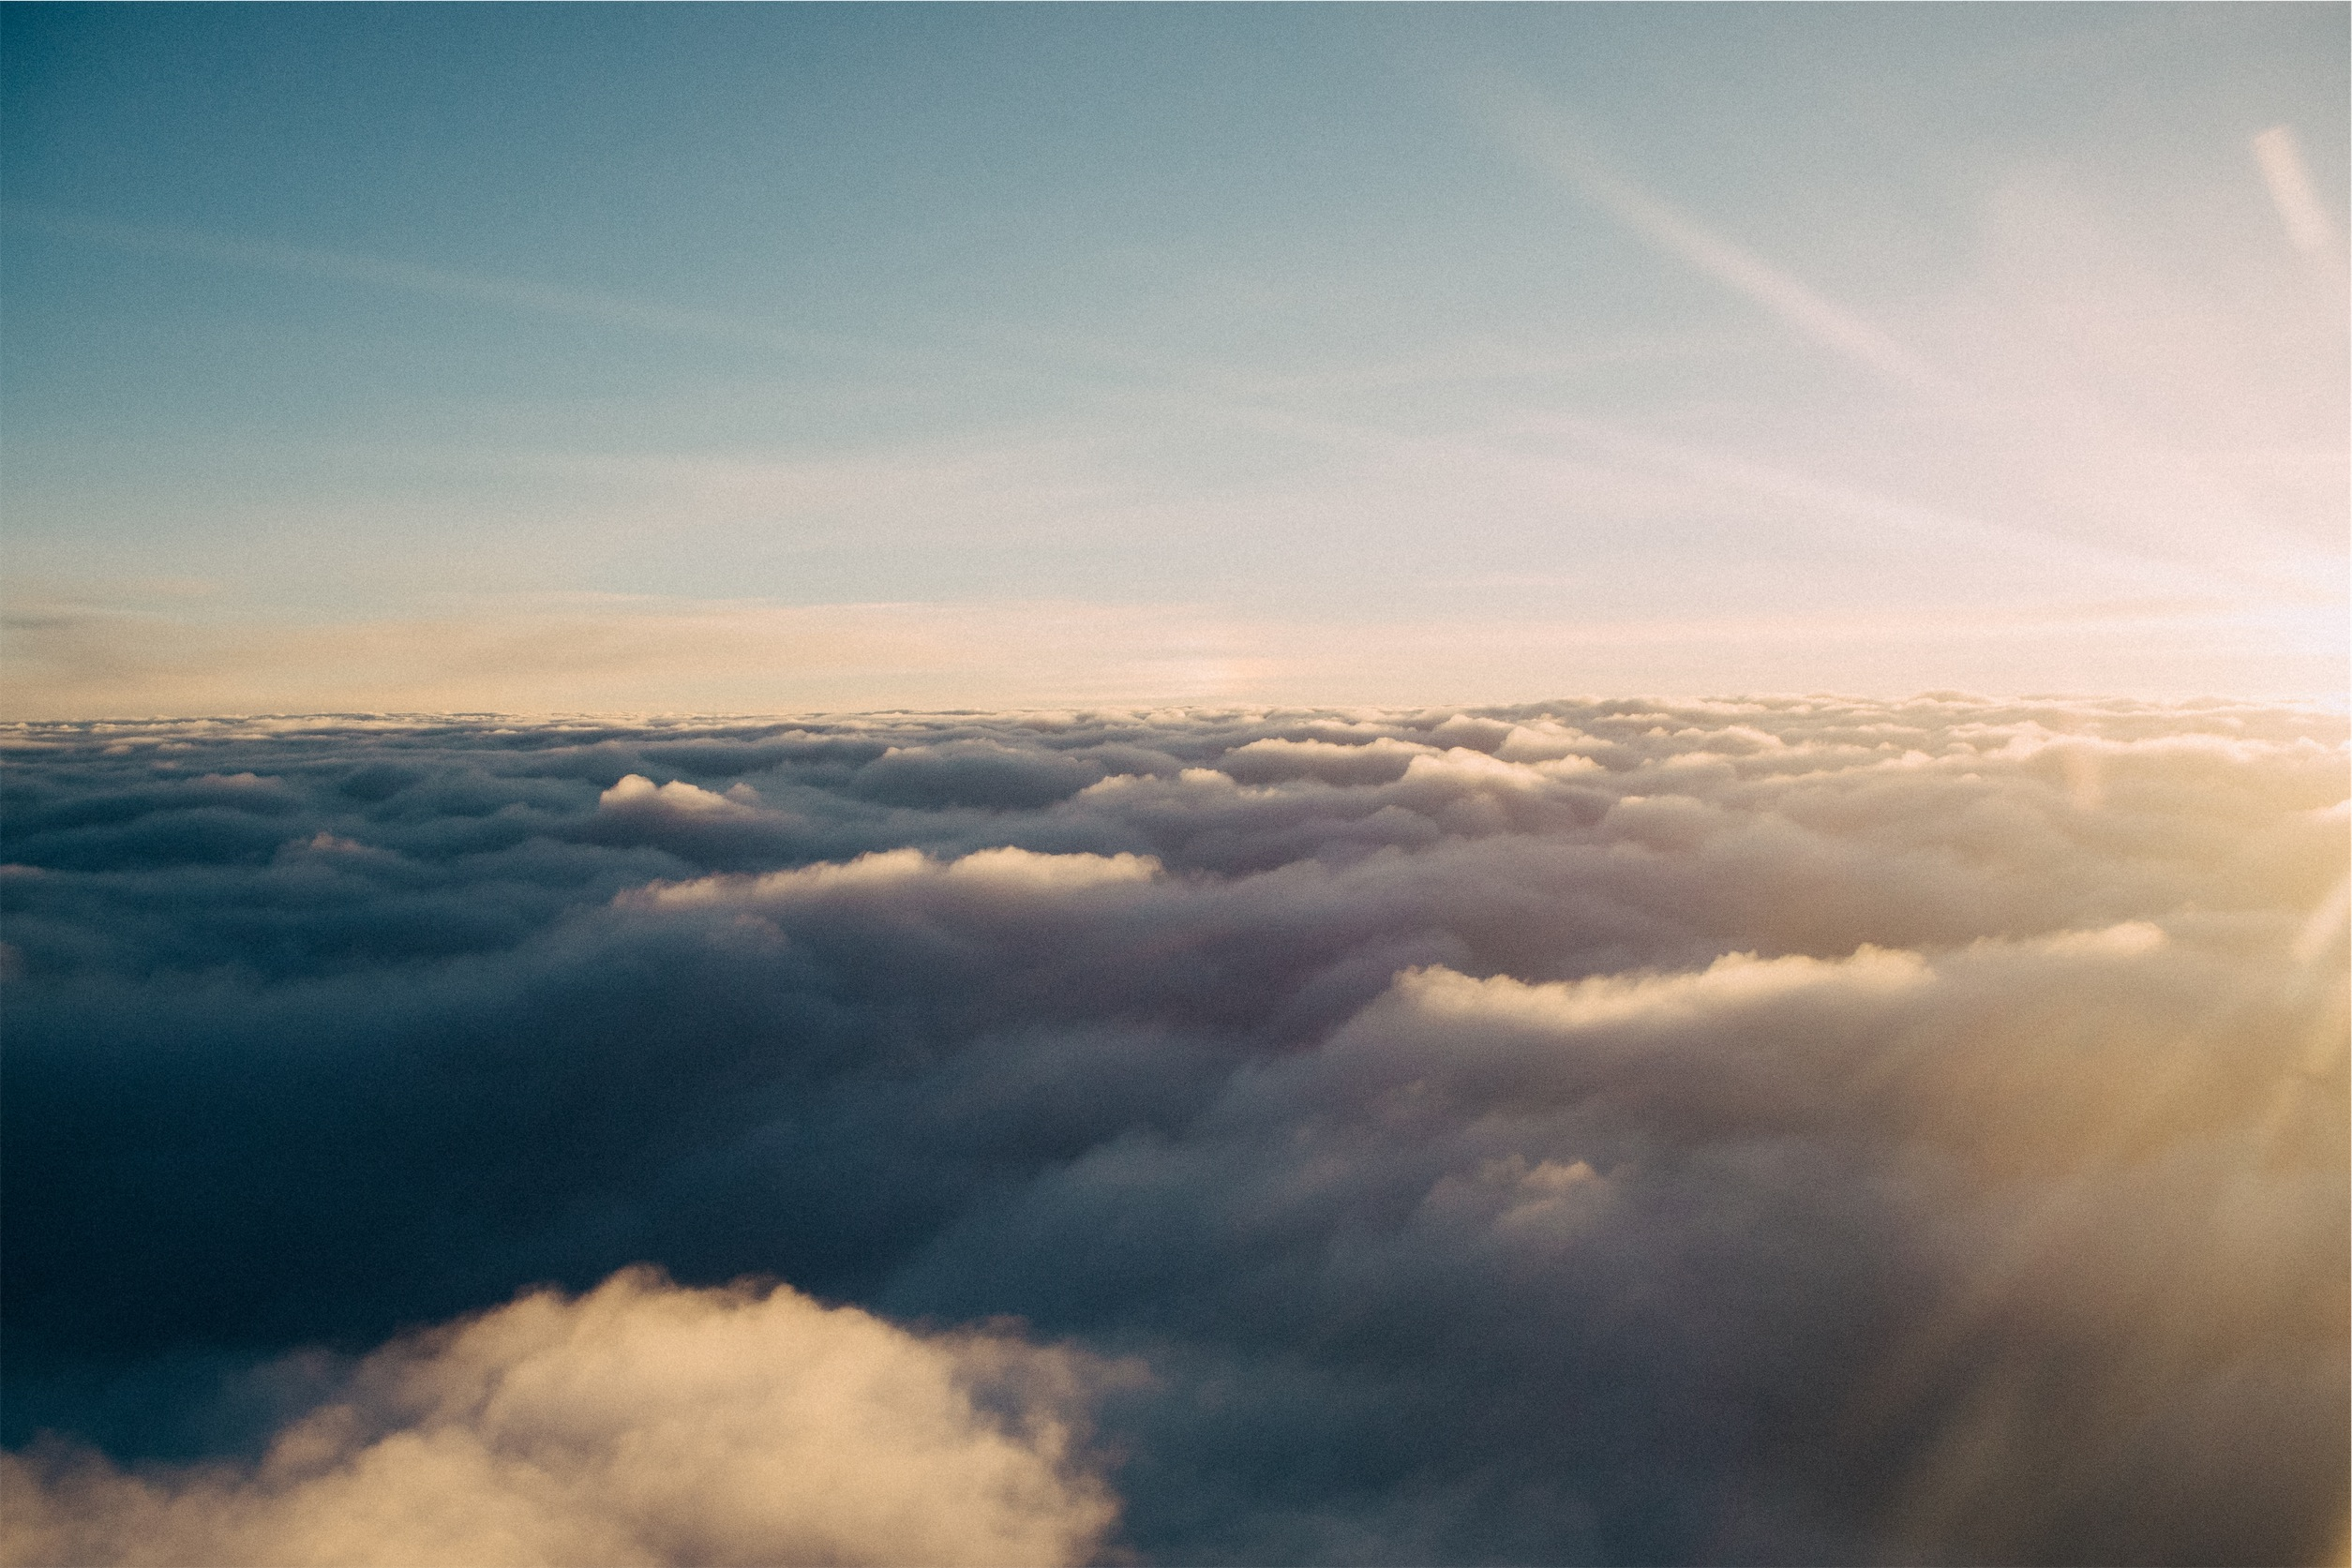 above the clouds shot with the sun shining through